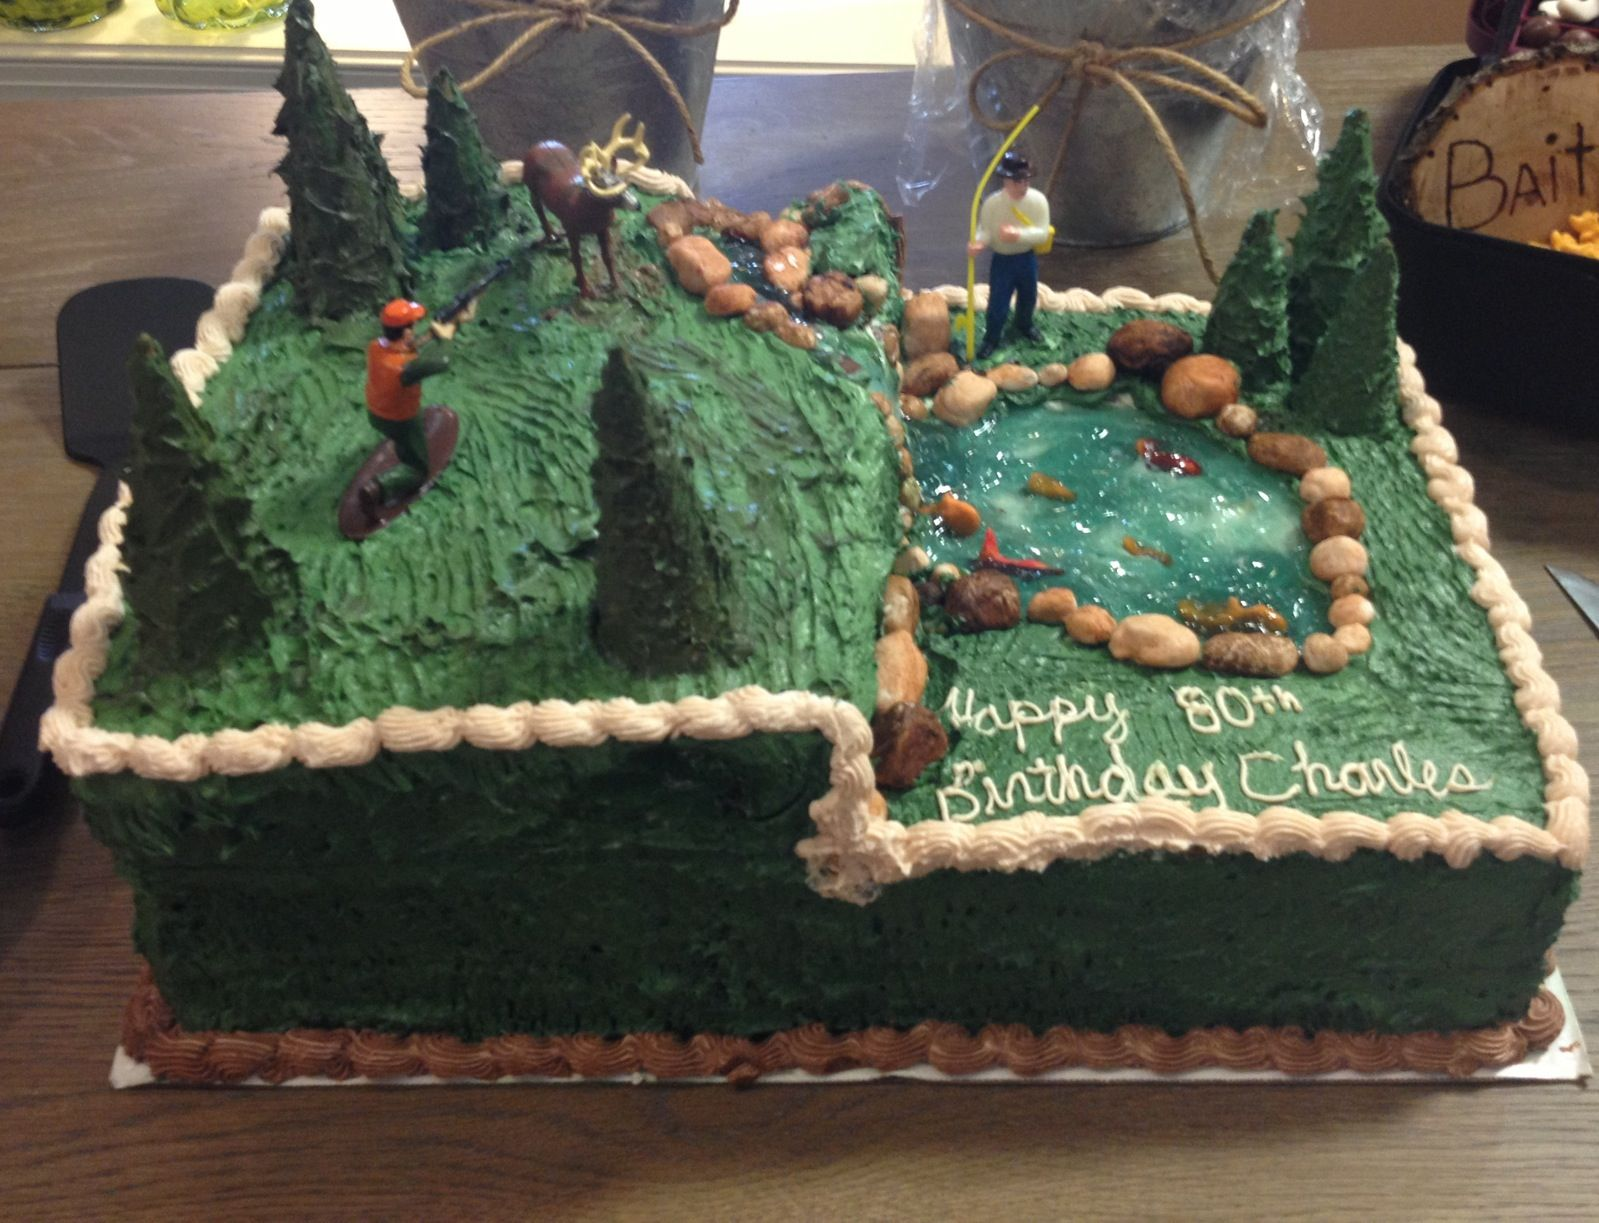 Hunting fishing cake custom cakes pinterest for Fishing cake ideas